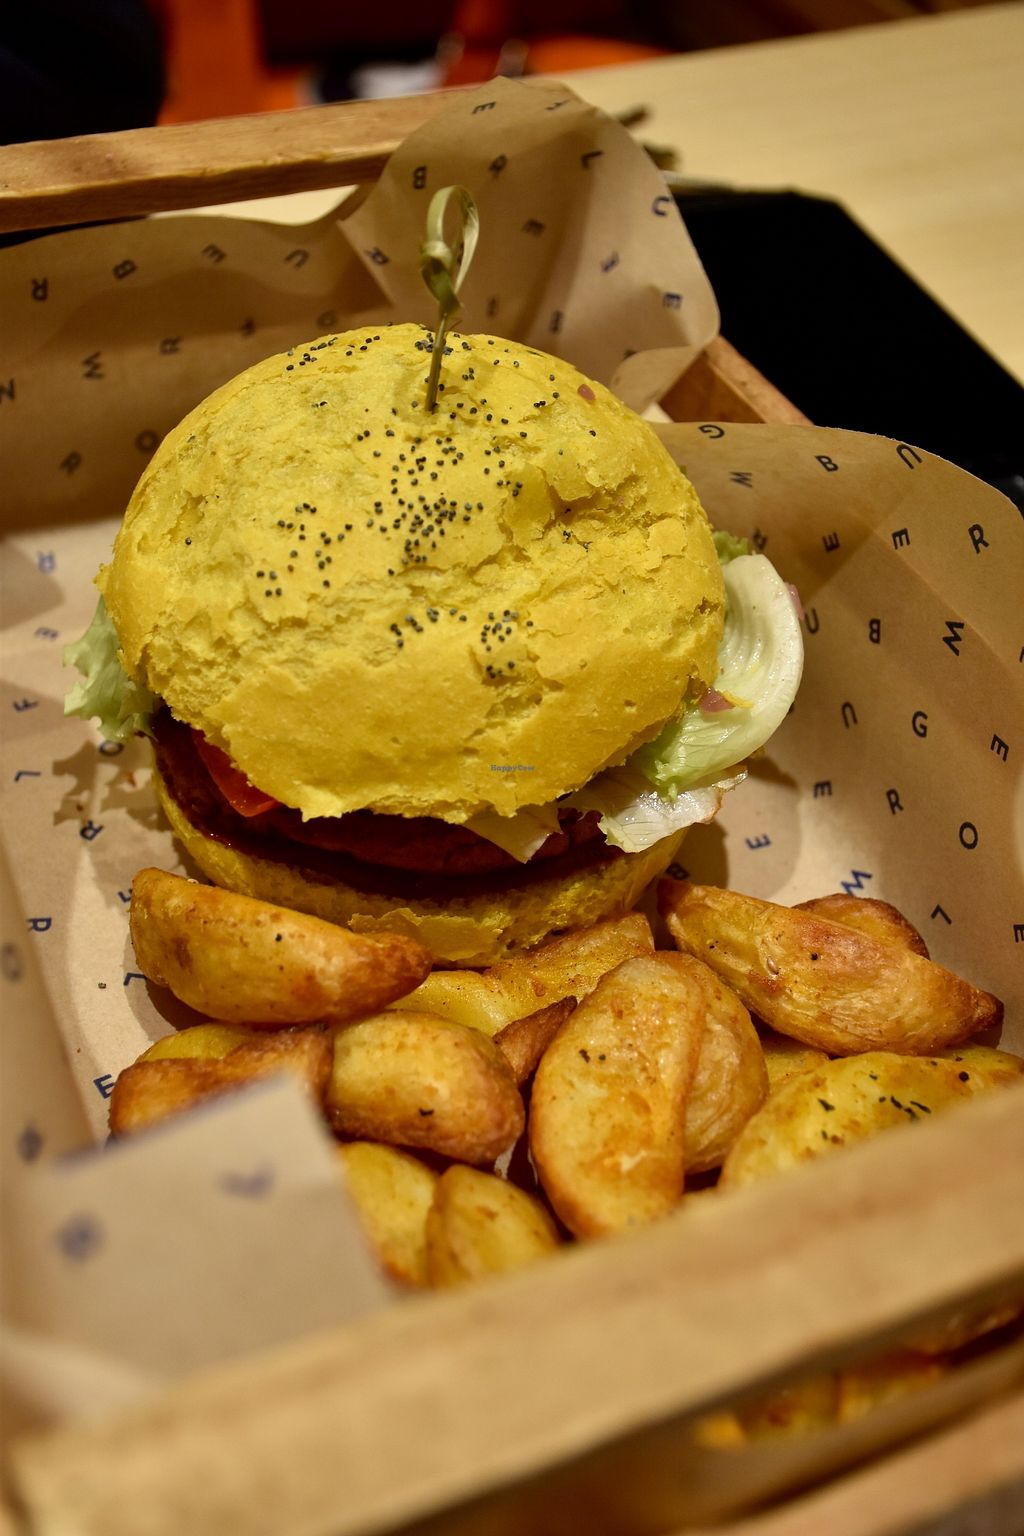 """Photo of Flower Burger  by <a href=""""/members/profile/mbendi"""">mbendi</a> <br/>A yellow burger with fries :) <br/> December 31, 2017  - <a href='/contact/abuse/image/81758/341347'>Report</a>"""